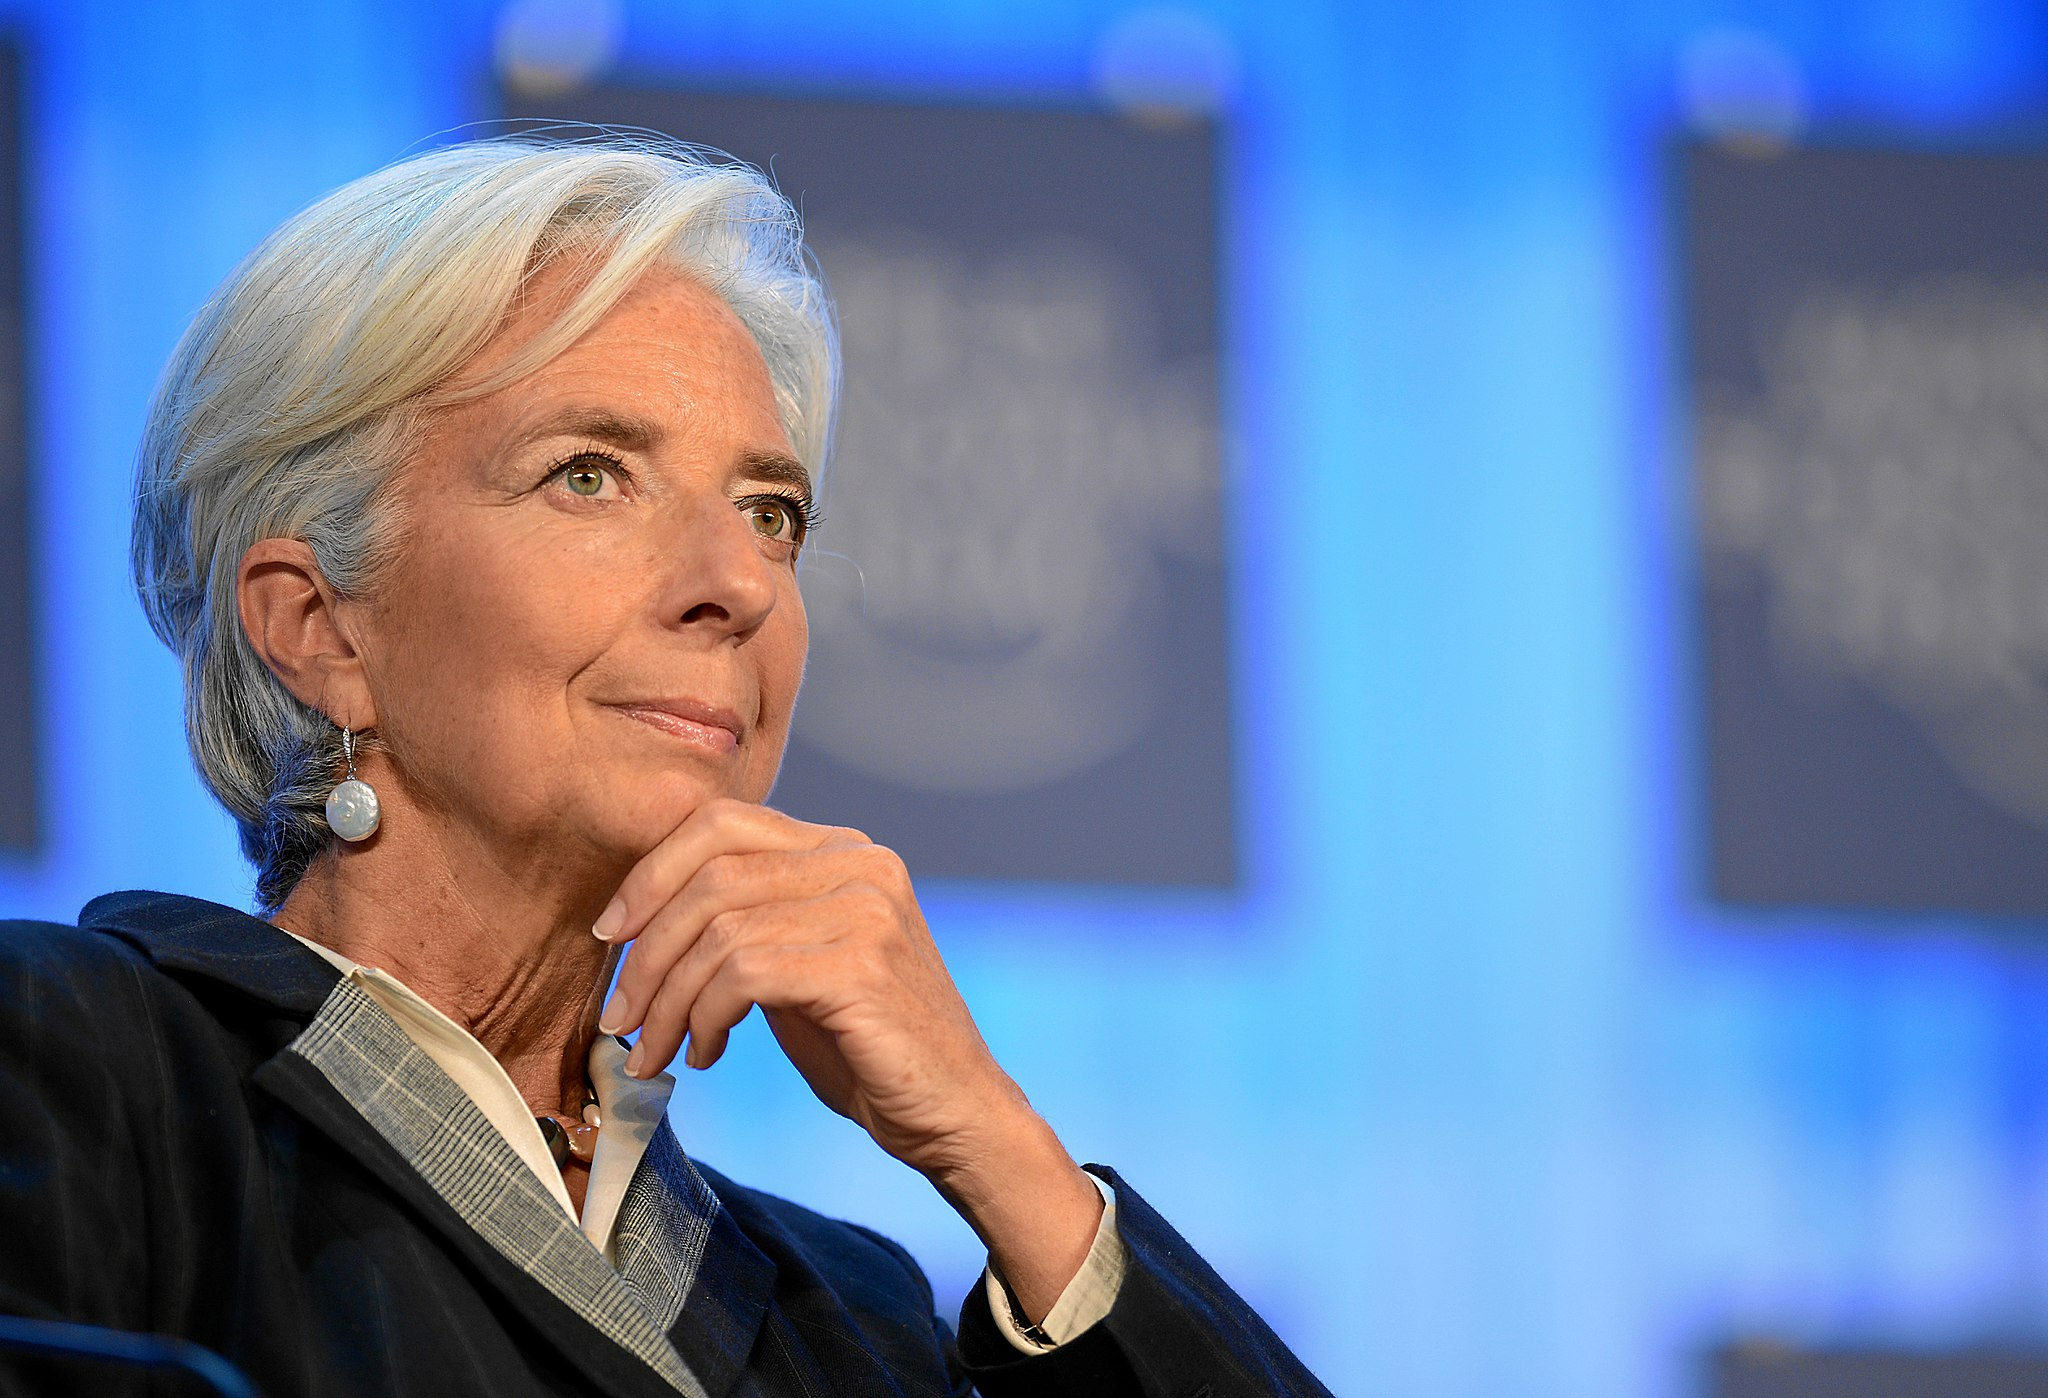 Christine Lagarde: How Women in Leadership Make a Difference